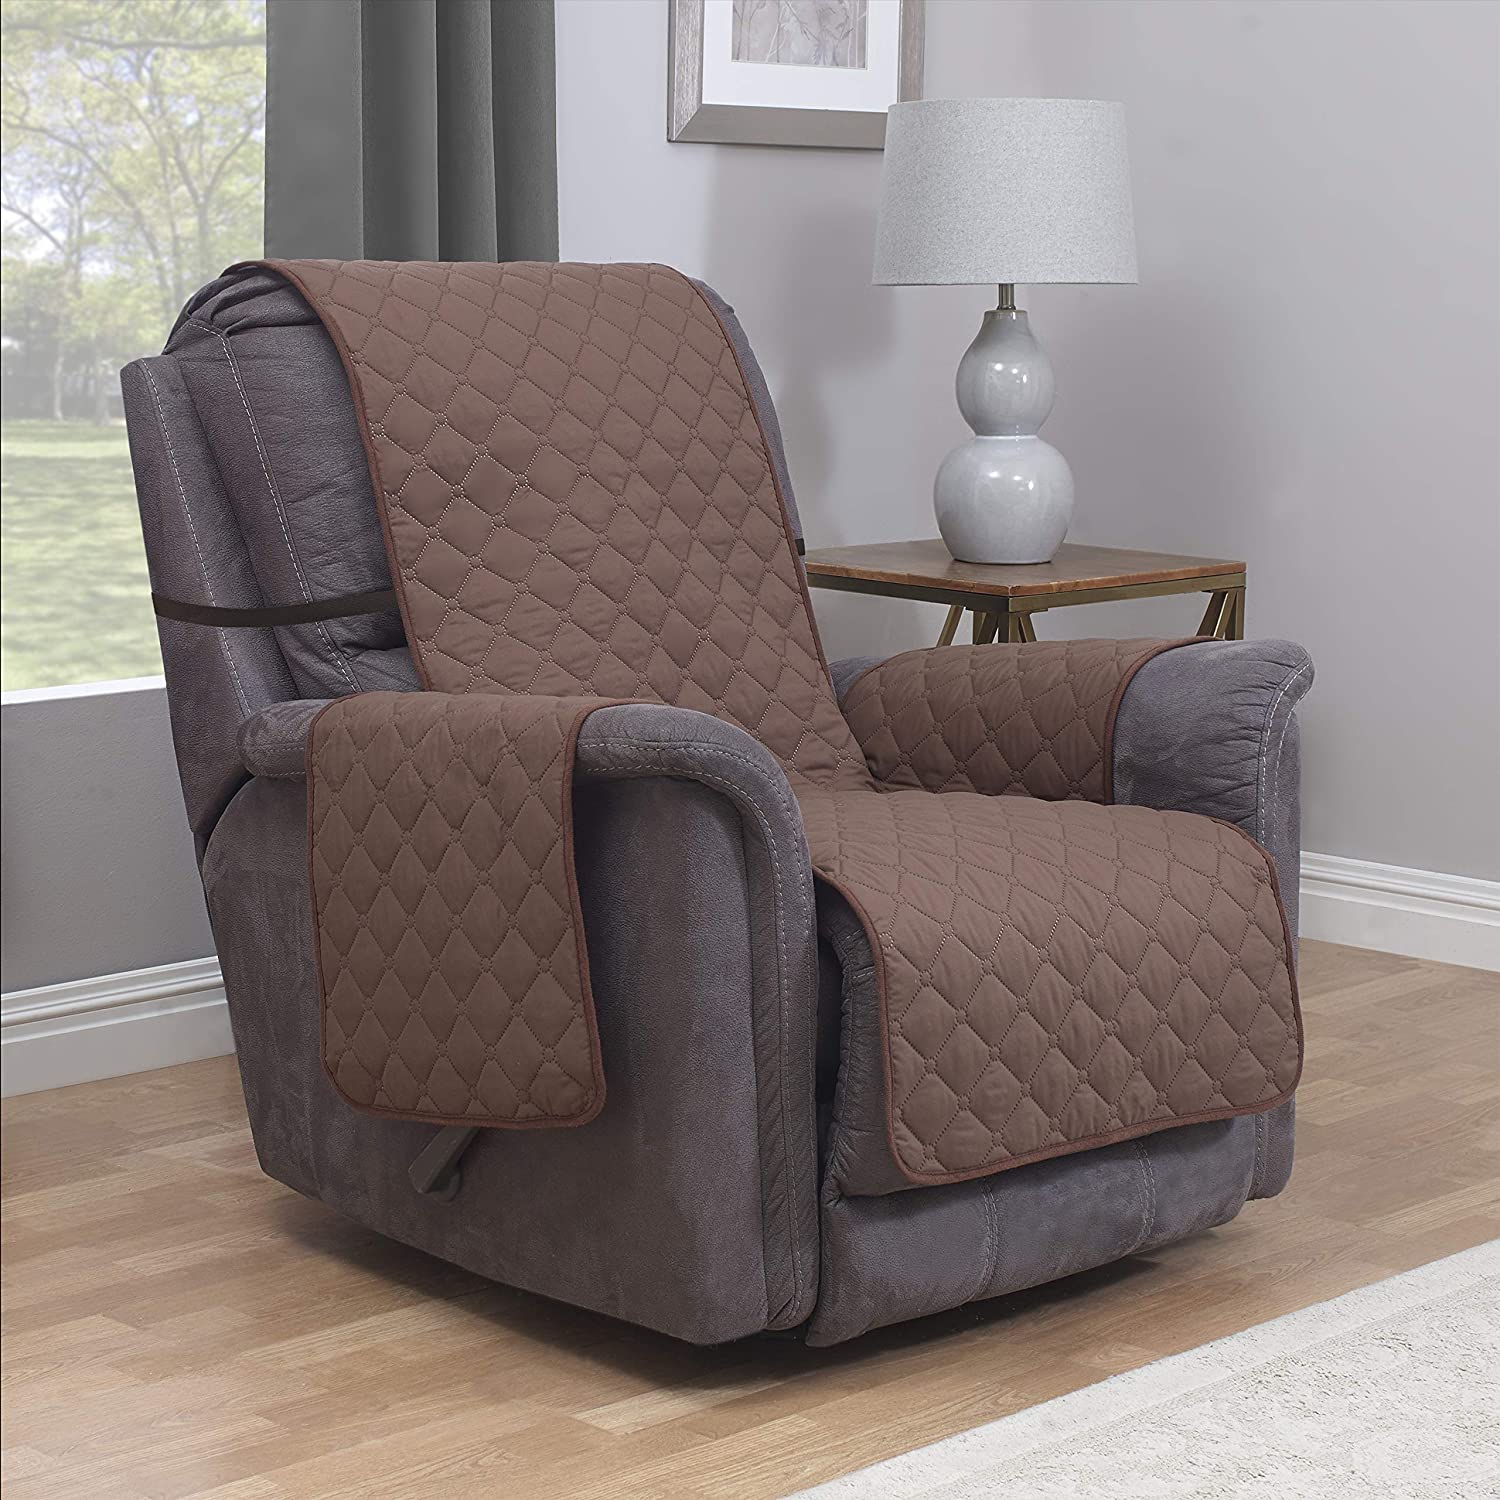 "Furniture Fresh Waterproof Recliner Armchair Protector | Microfiber Slipcover | Premium Elastic Stay-Put Strap | Cover Protects from Dogs & Other Pets (Recliner, up to 23"" seat Size, Chocolate): Home & Kitchen"